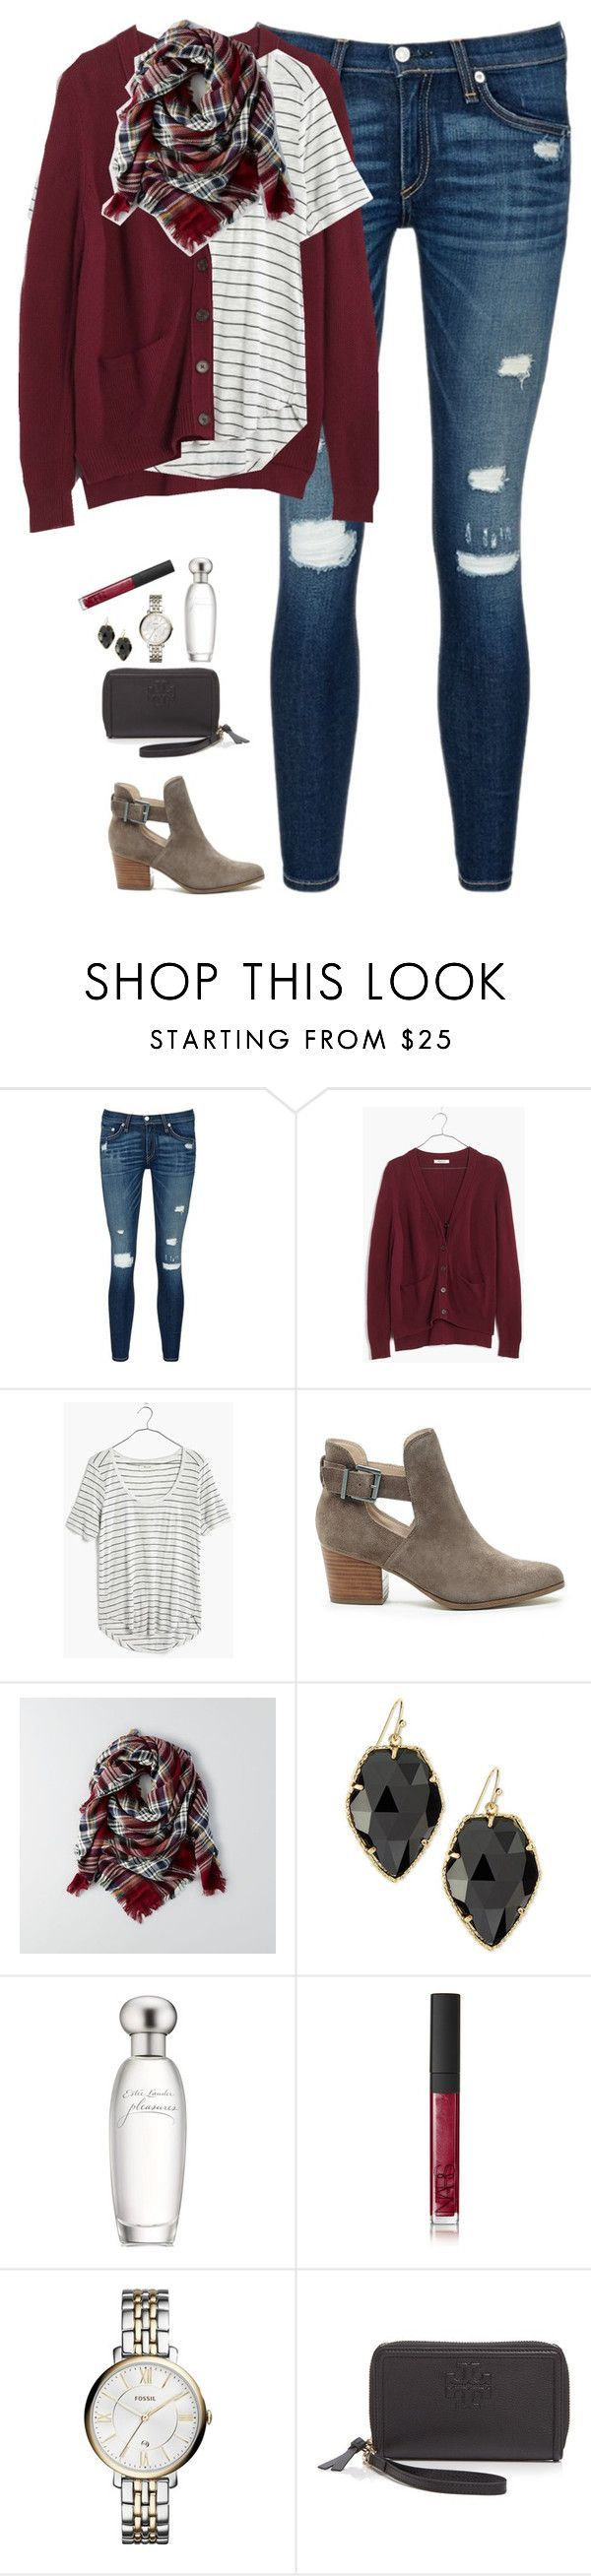 """Burgundy cardigan, plaid scarf & striped tee"" by steffiestaffie ❤️ liked on Polyvore featuring rag & bone/JEAN, Madewell, Sole Society, American Eagle Outfitters, Kendra Scott, Esté️️e Lauder, NARS Cosmetics, FOSSIL and Tory Burch"